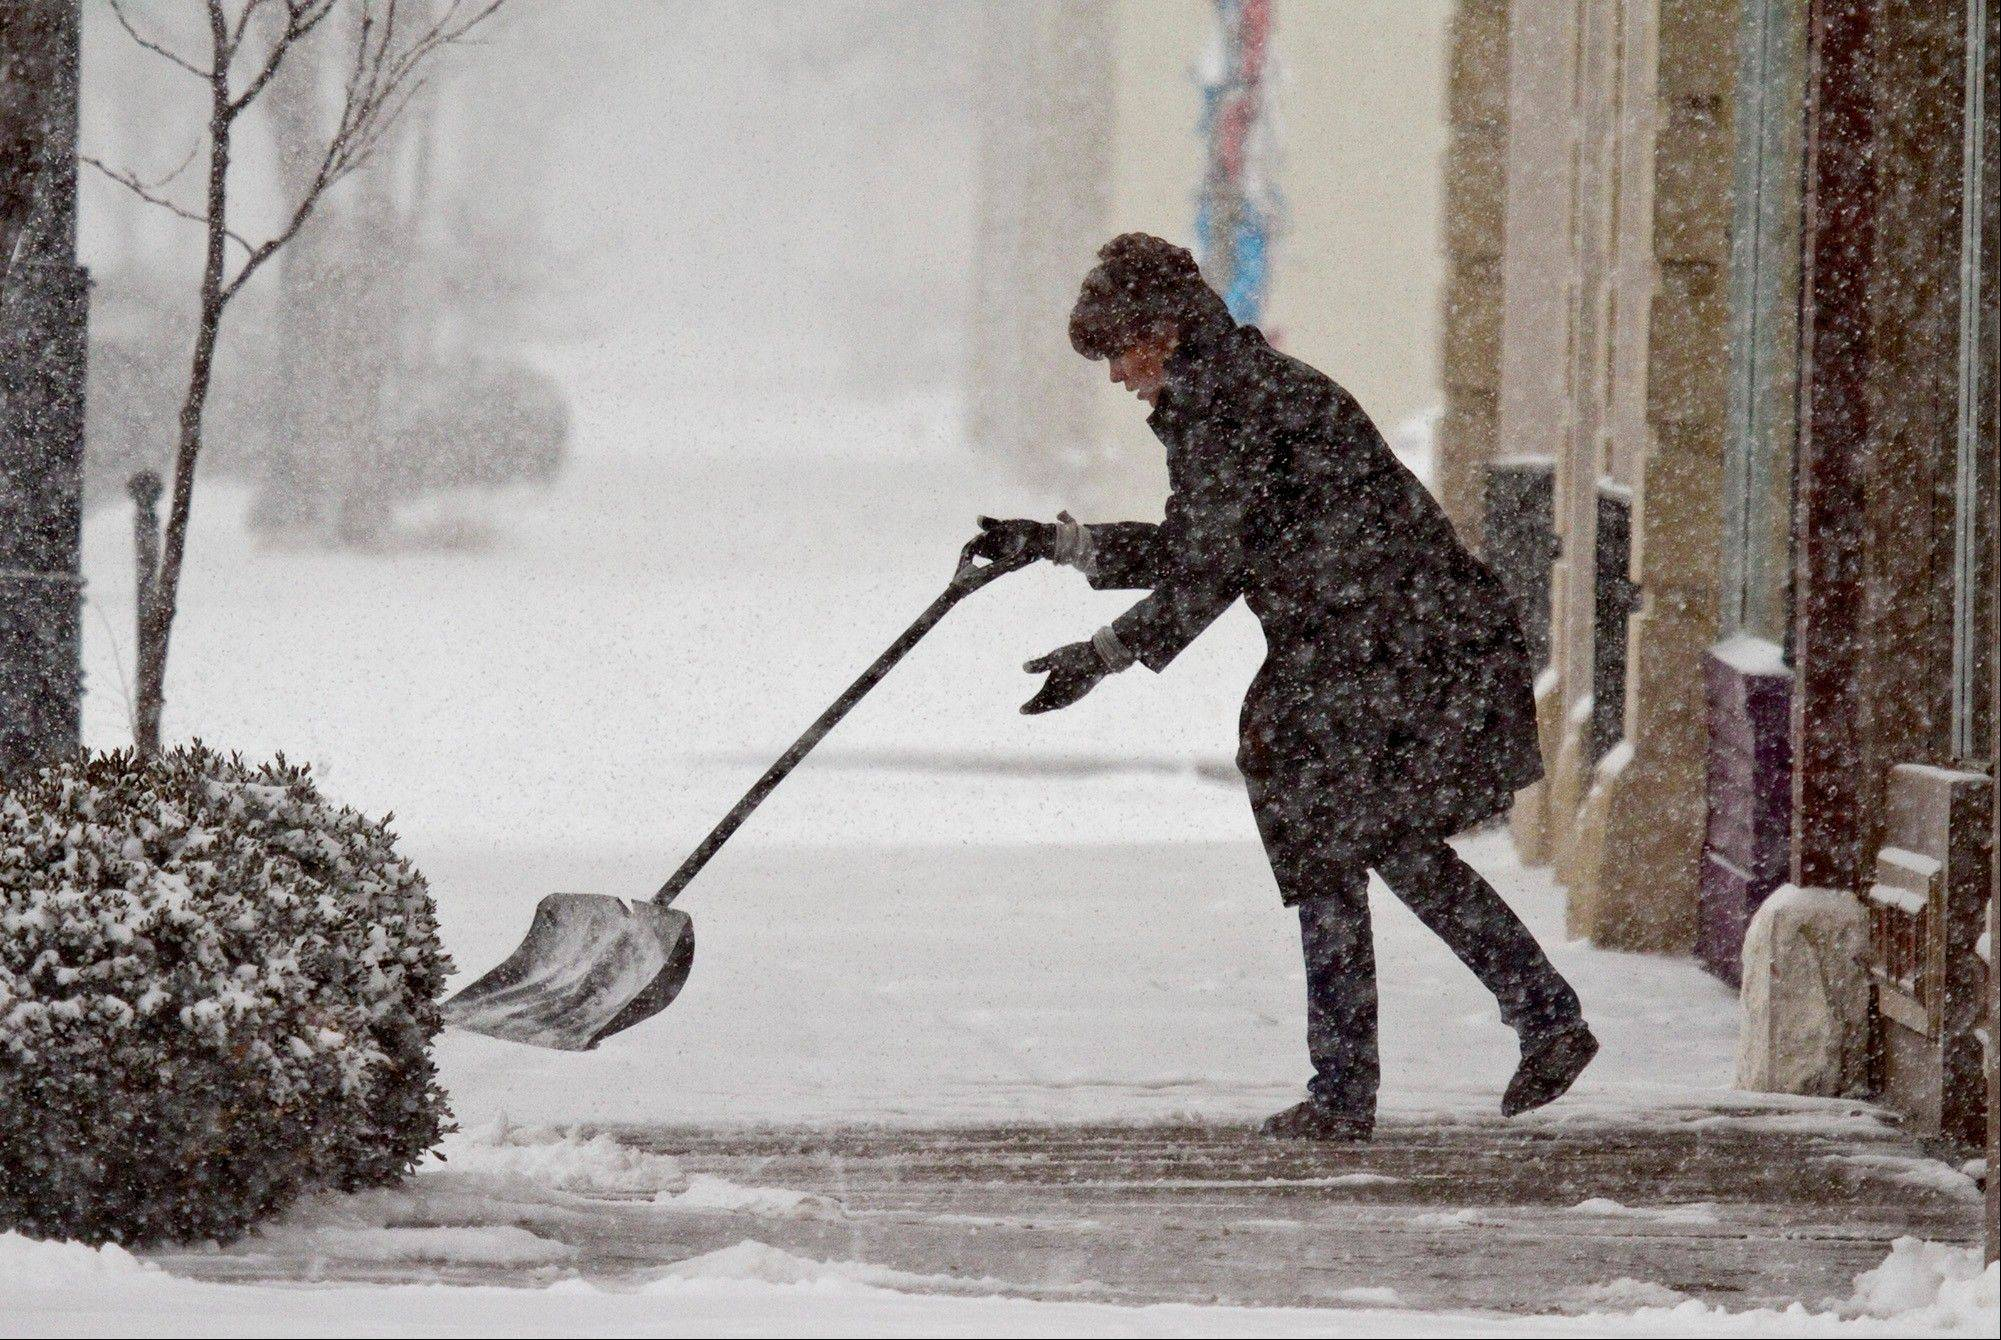 Roxanne Aubrey shovels snow from the walk in front of her beauty salon in Wichita, Kan. Wednesday, Feb. 20, 2013.